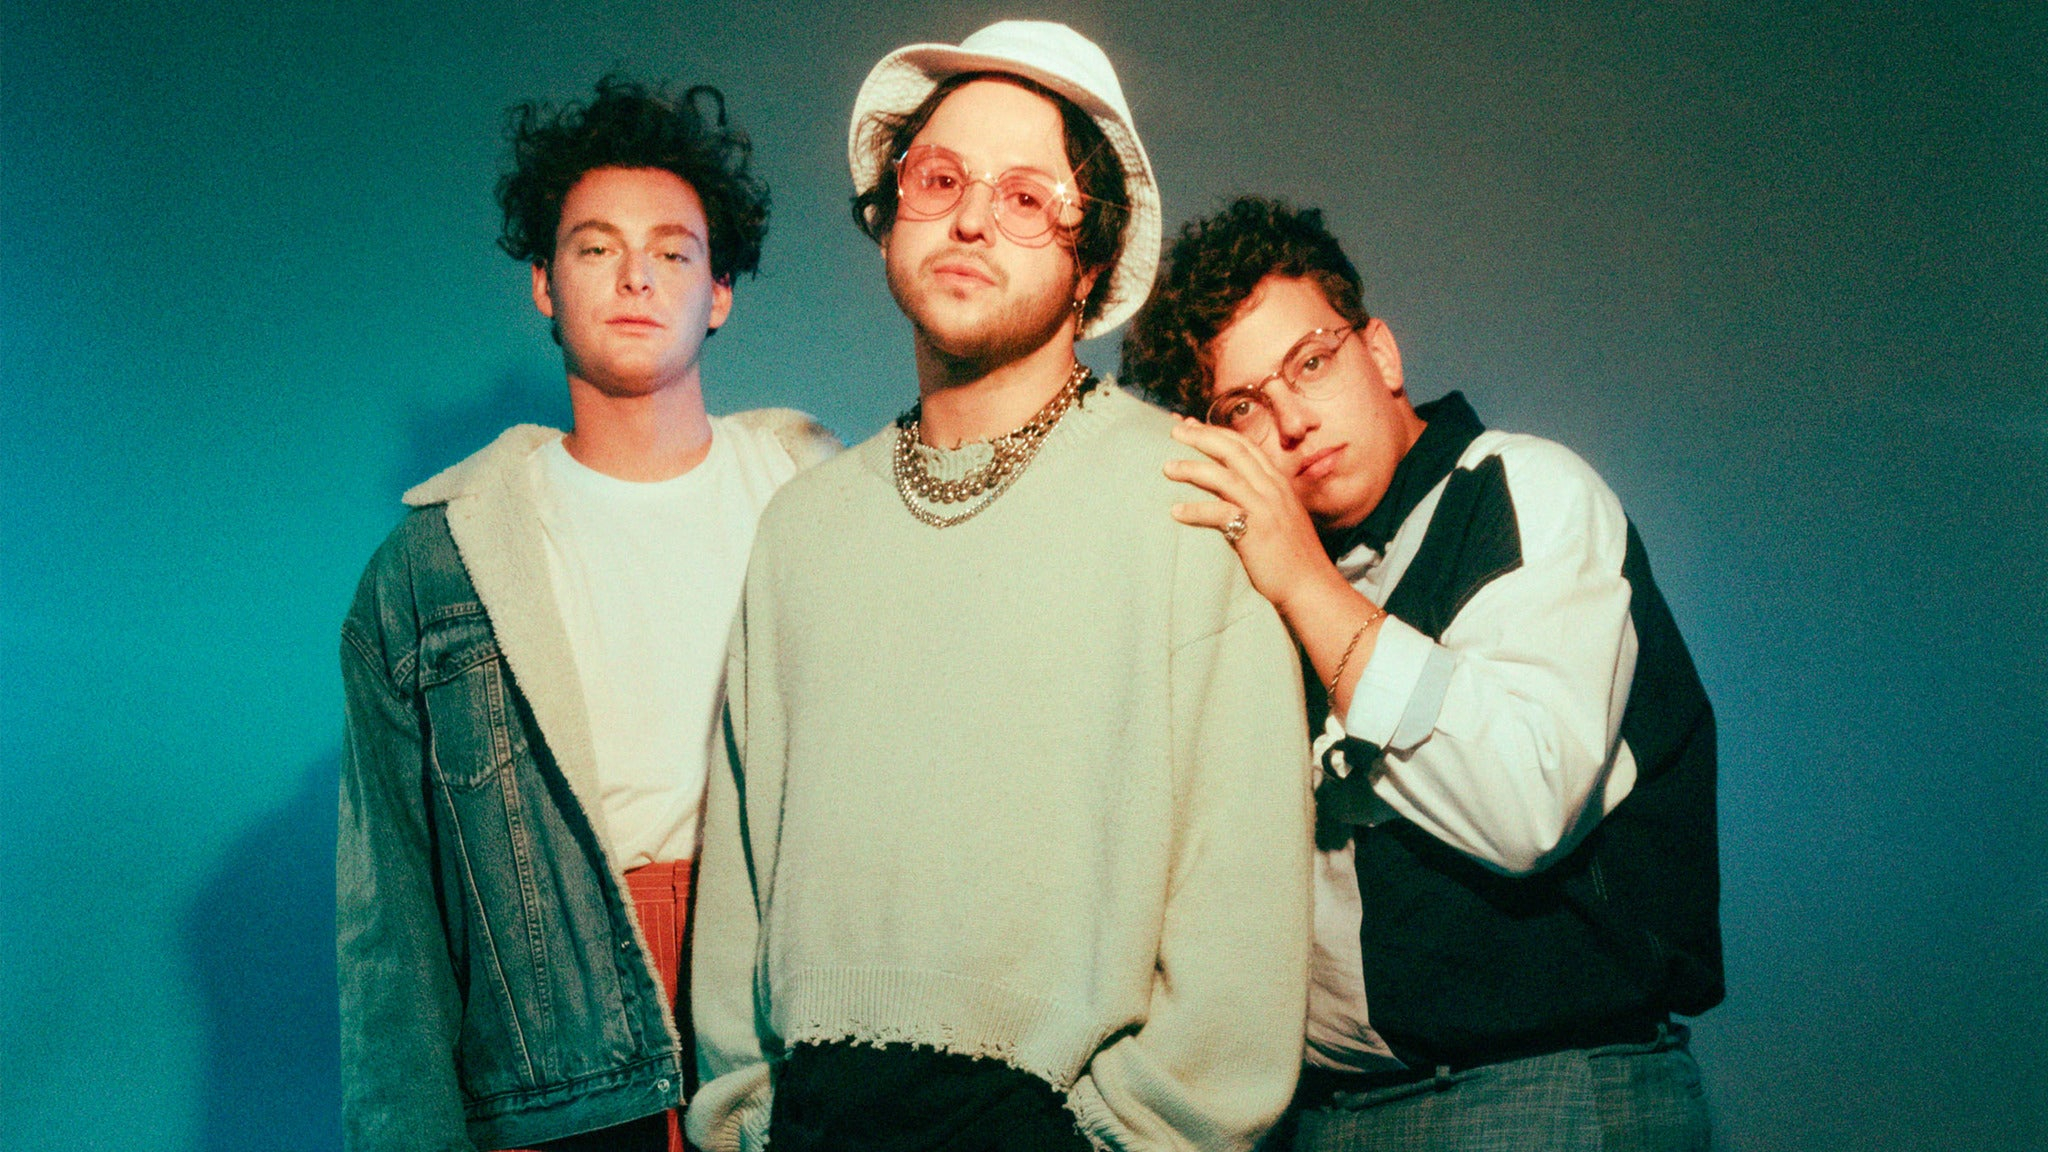 Lovelytheband w/ Tessa Violet at Gothic Theatre